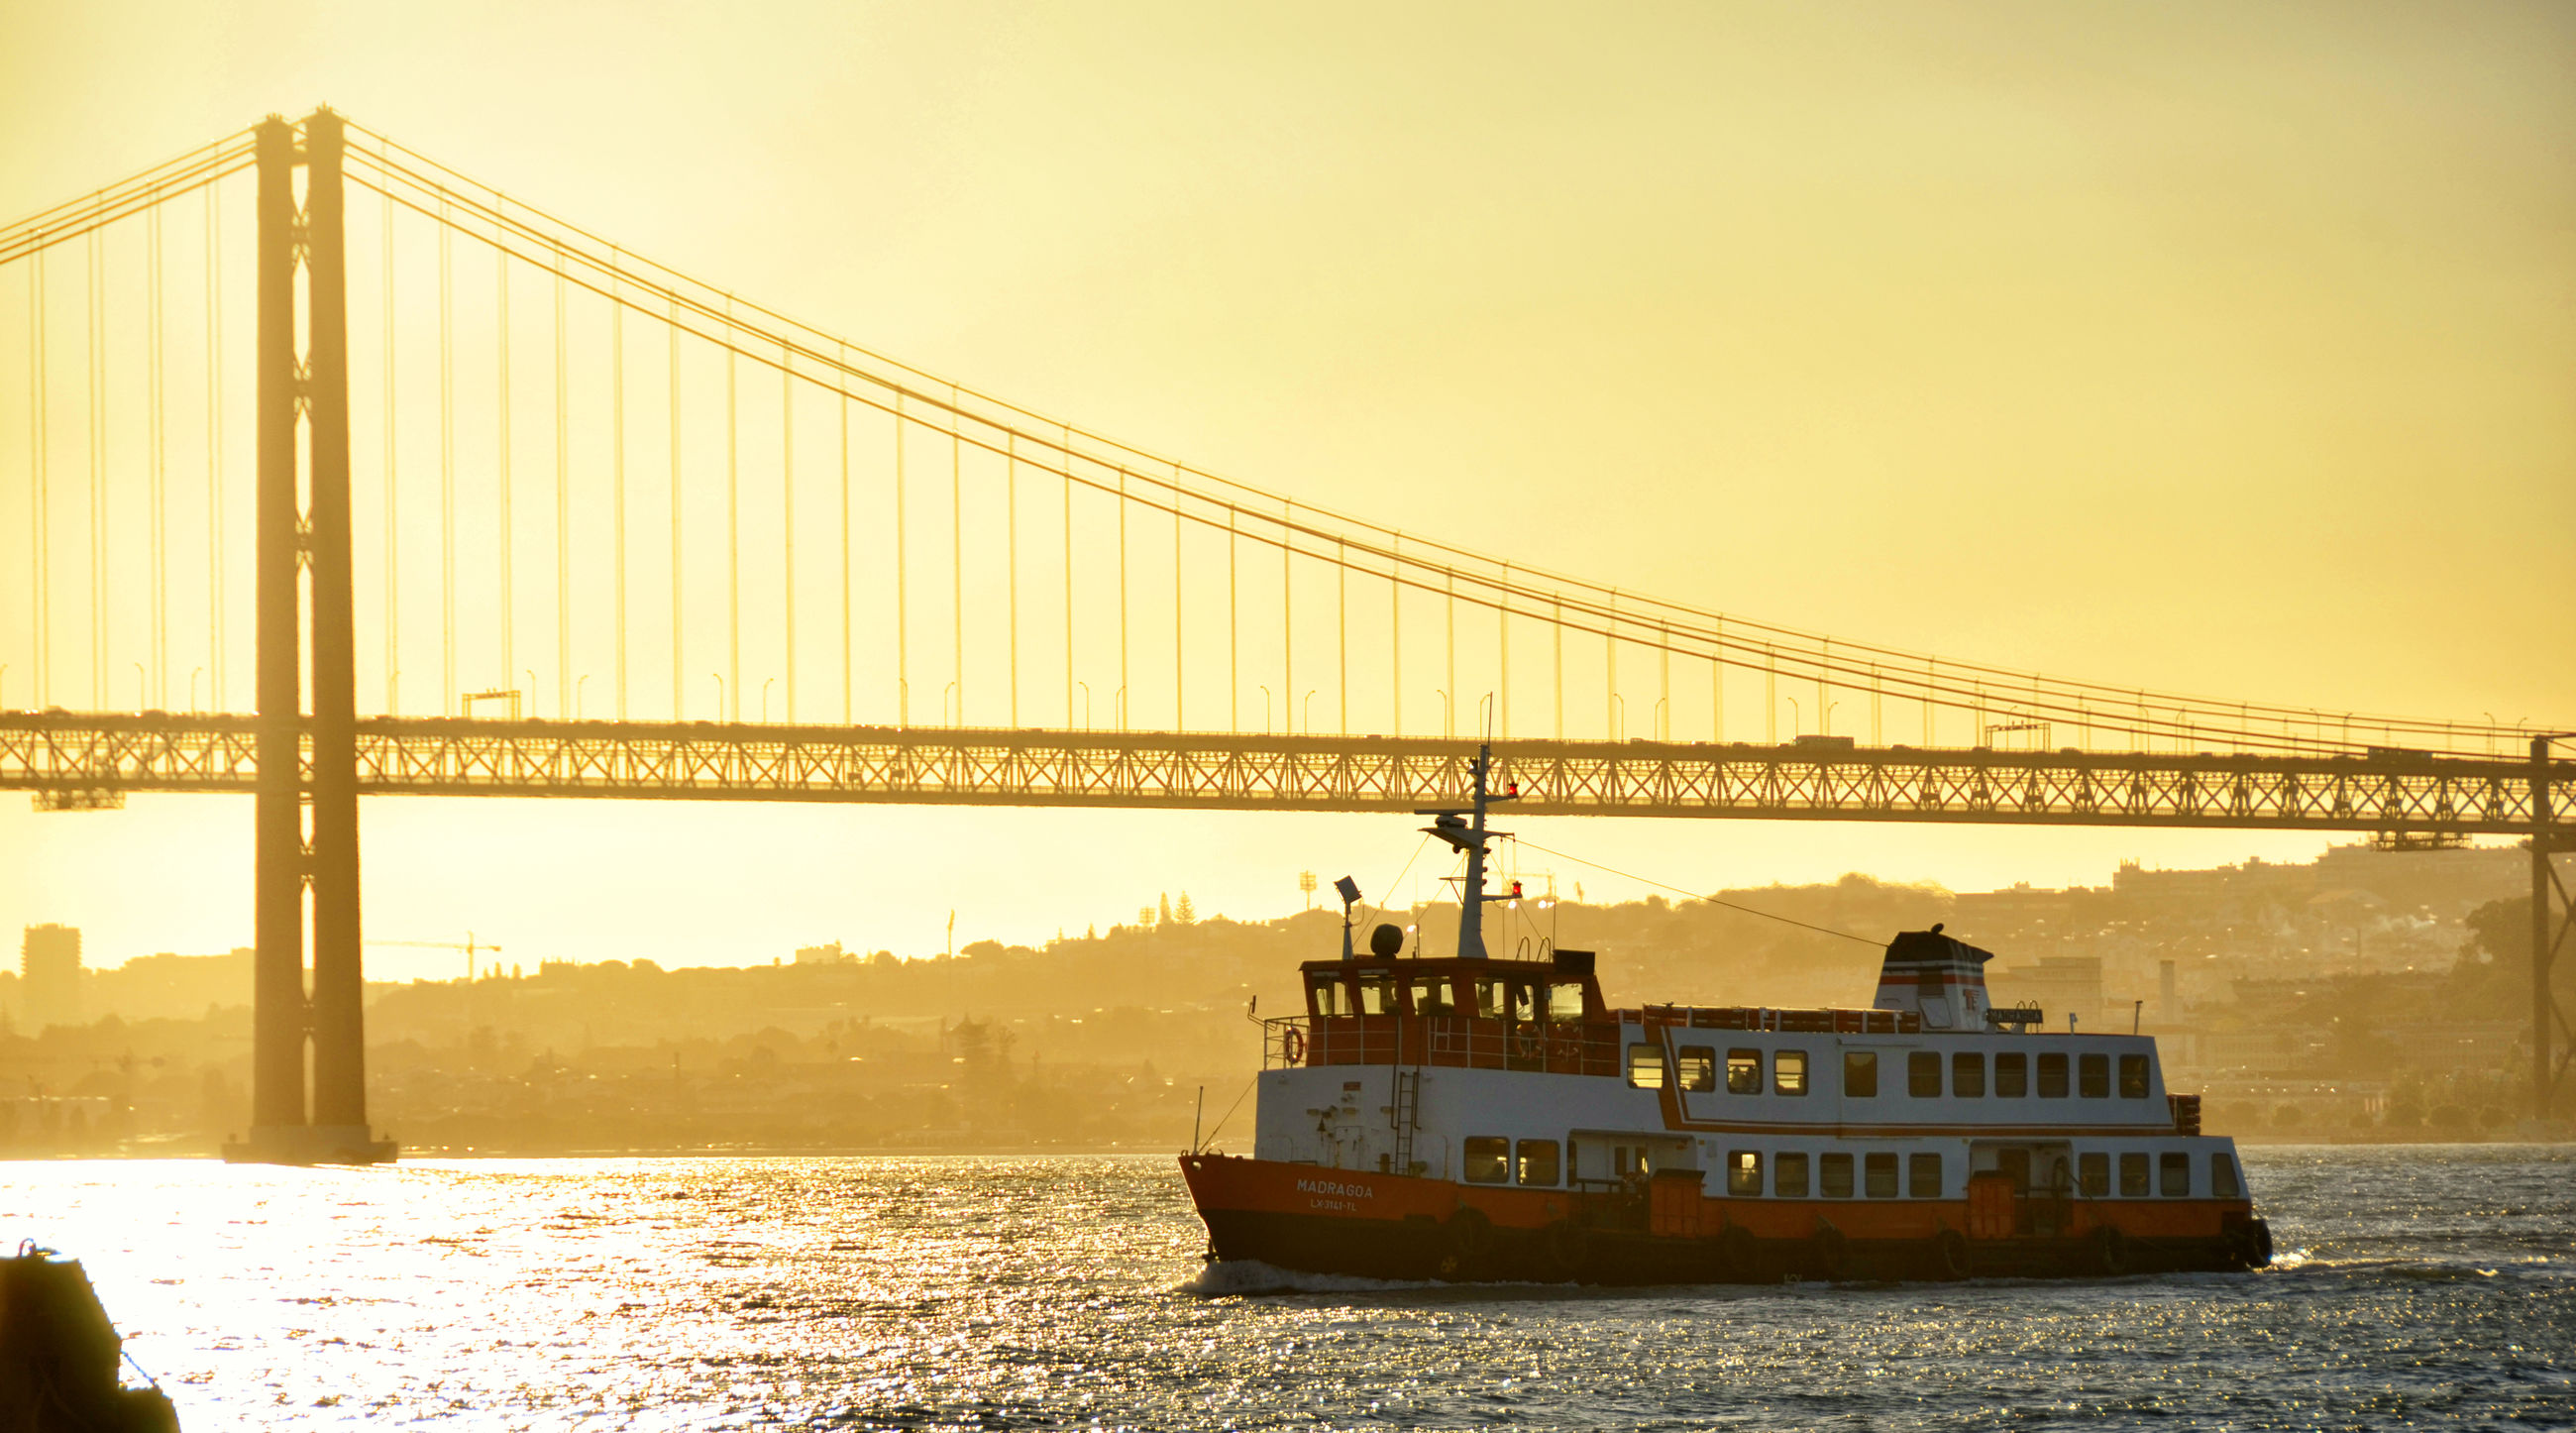 transportation, bridge - man made structure, nautical vessel, mode of transport, built structure, connection, water, clear sky, suspension bridge, architecture, river, travel, travel destinations, copy space, outdoors, waterfront, sky, nature, freight transportation, no people, city, day, industry, cityscape